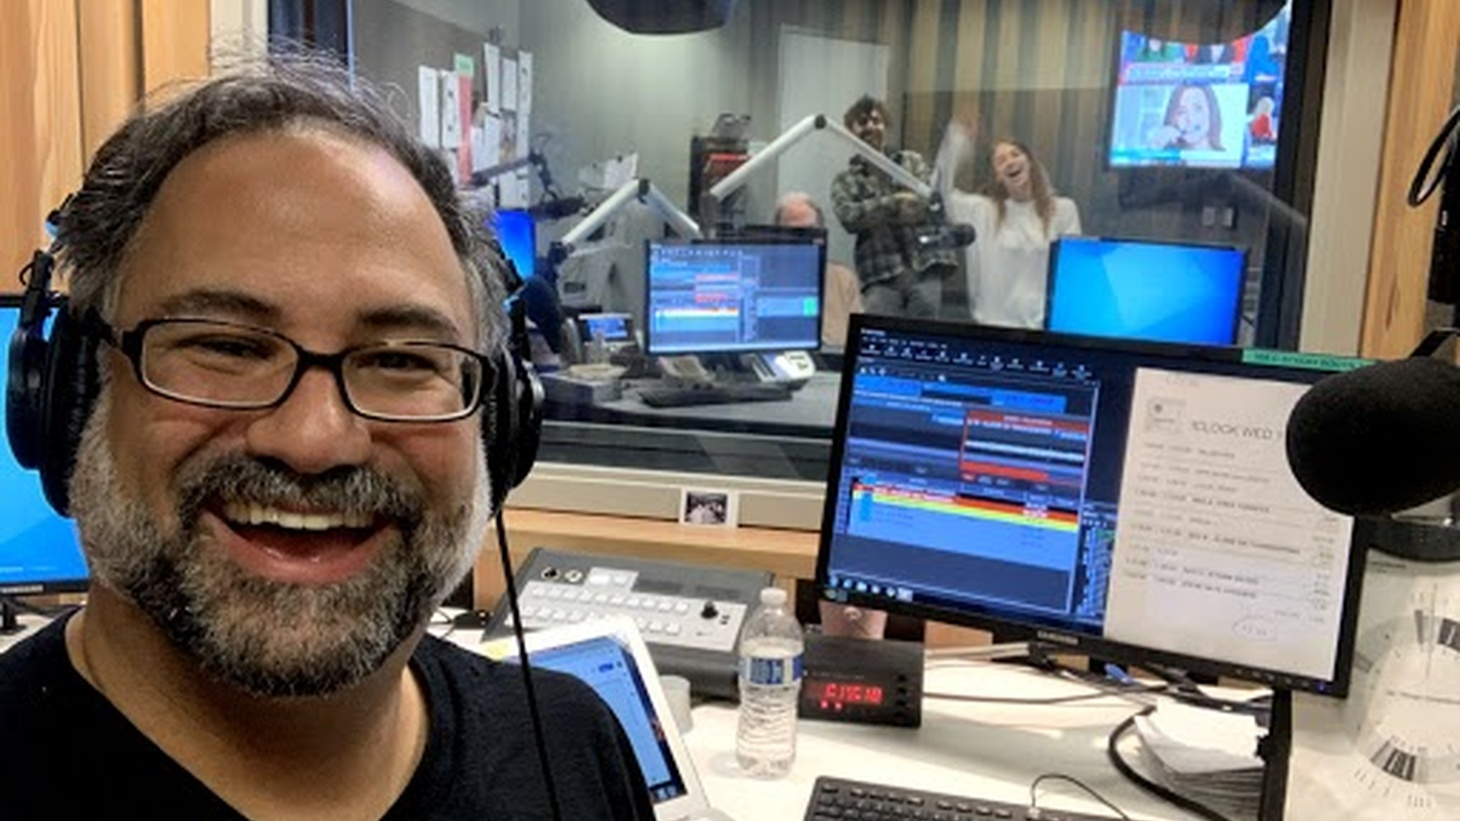 It's been one year since Steve Chiotakis has been in the host seat for Greater LA, with producer Jenna Kagel, engineers Phil Richards and PJ Shahamat in the control room.